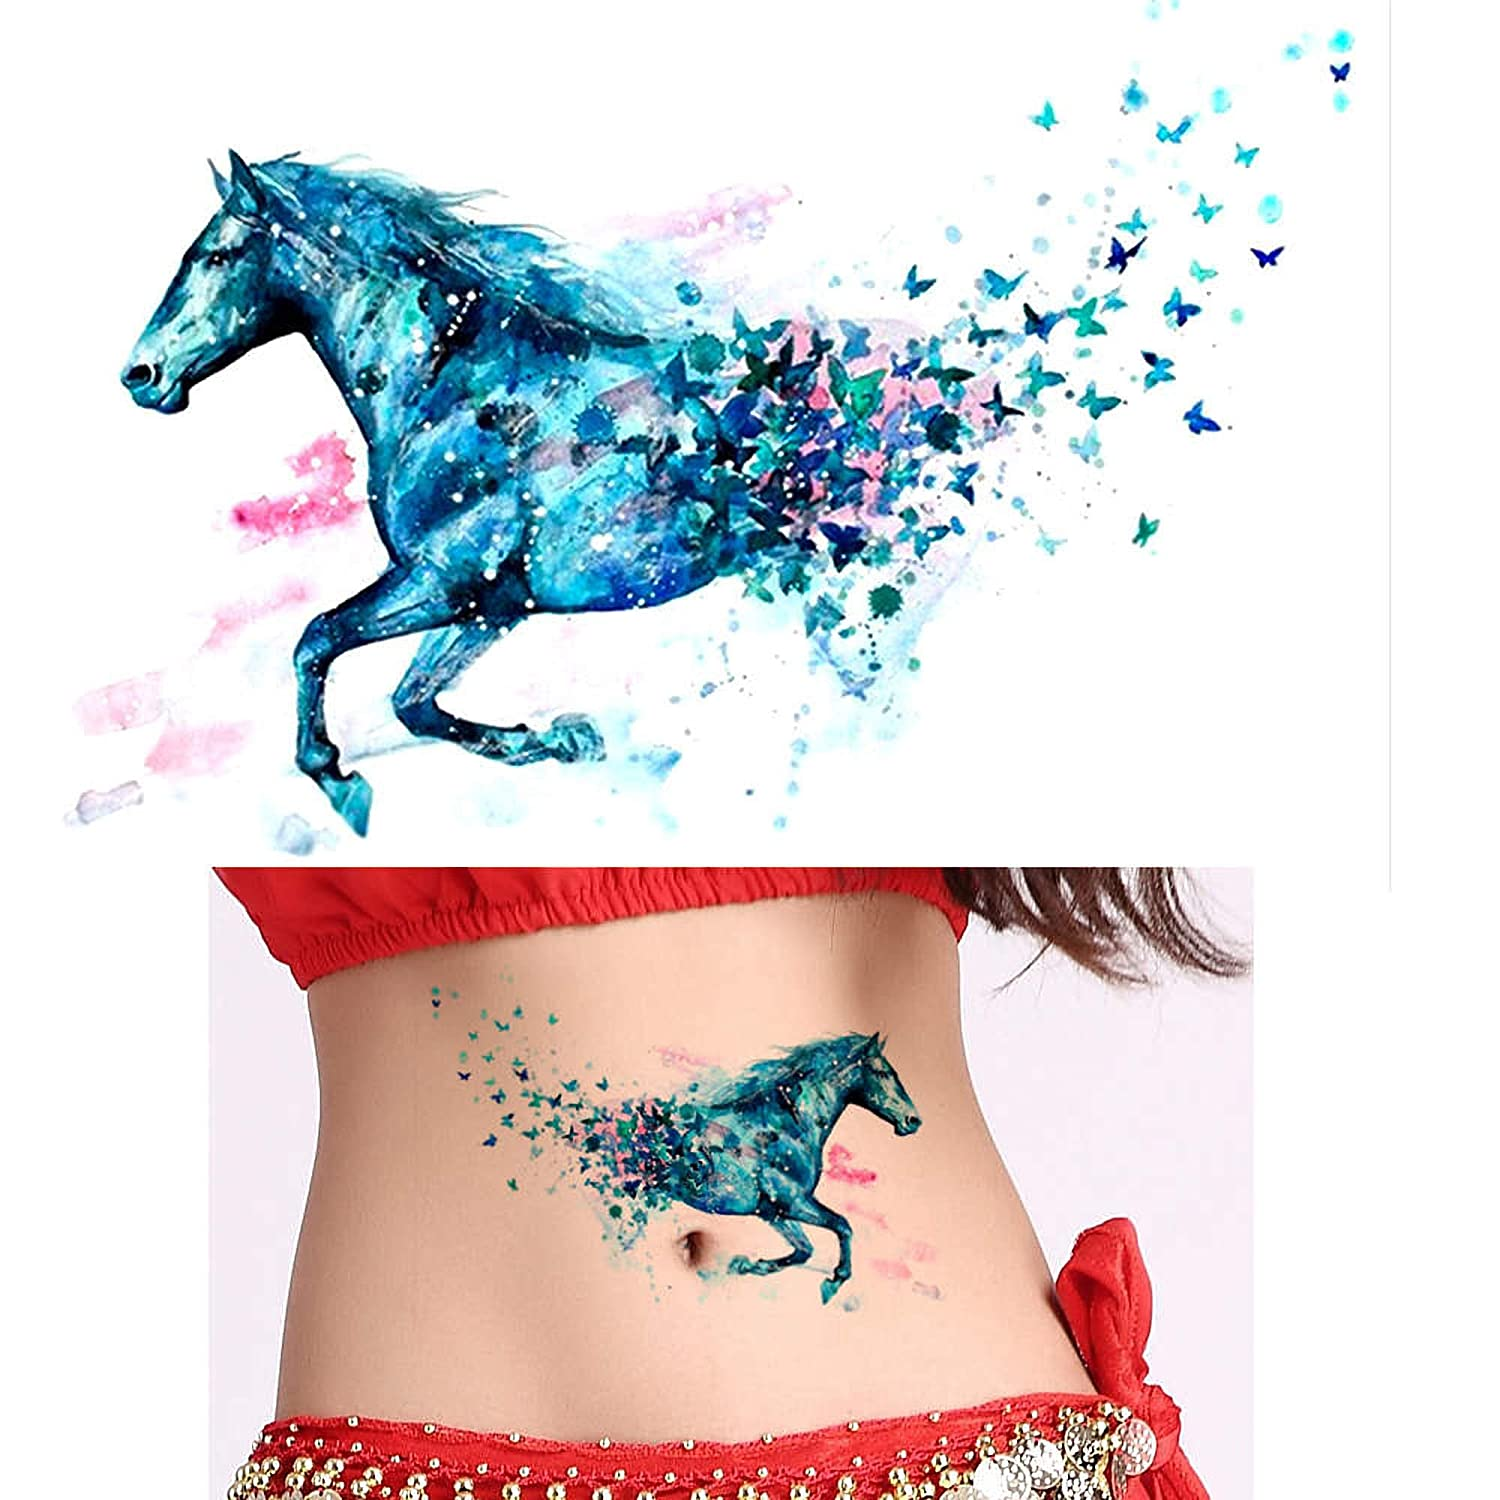 c98a1759f glaryyears 1x DIY Body Art Temporary Tattoo Colorful Animals Watercolor  Painting Drawing Horse Butterfly Decal Waterproof Tattoos Sticker:  Amazon.in: Beauty